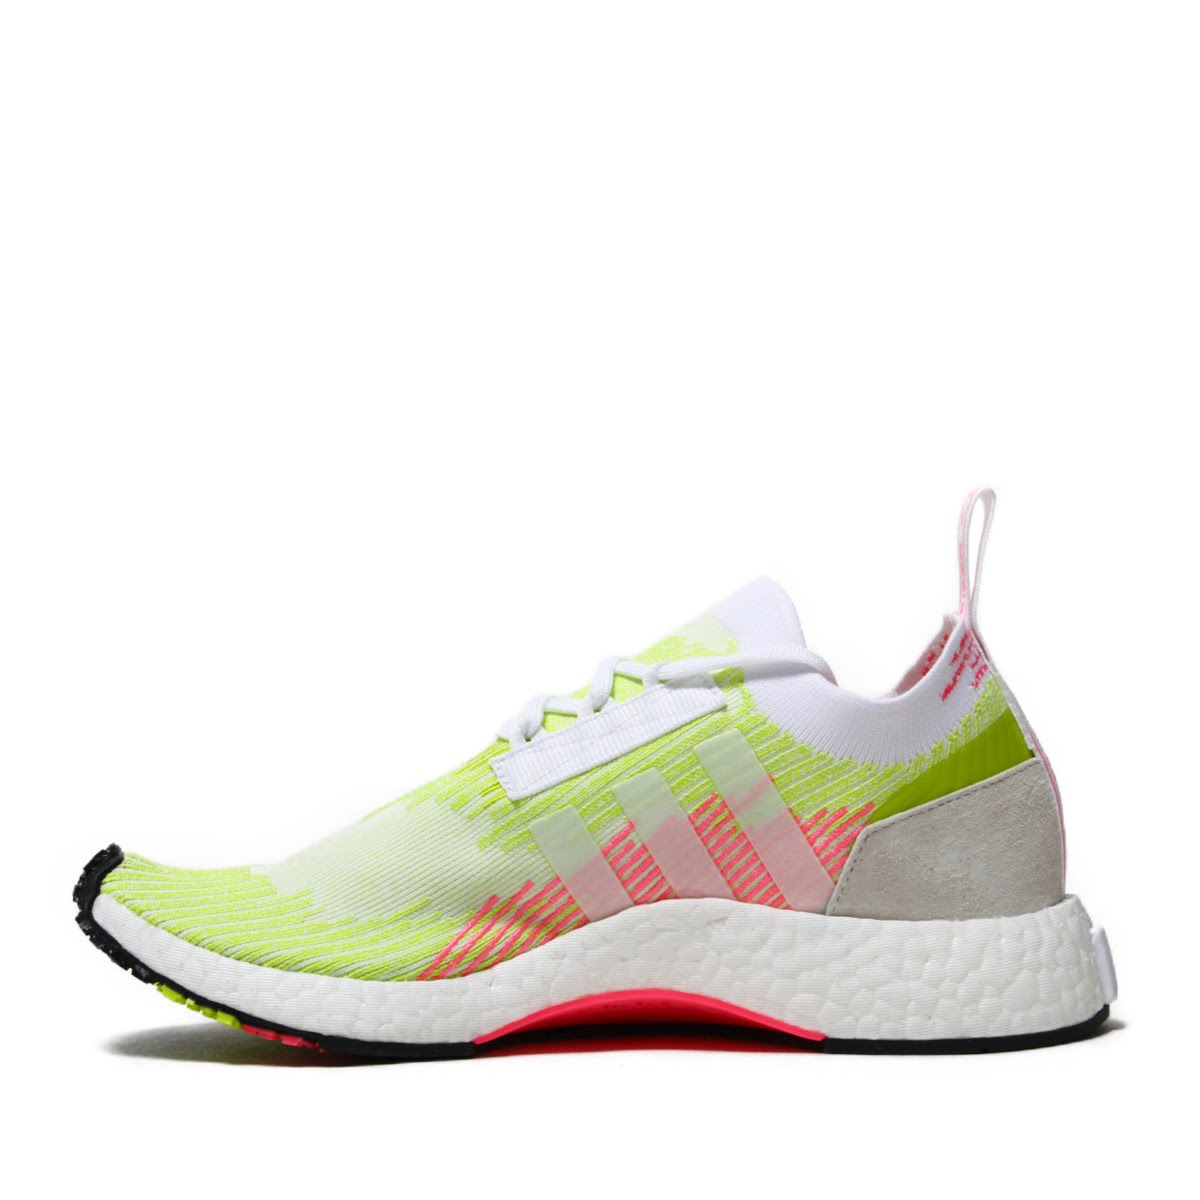 39dd875eb adidas Originals NMD RACER PK W (Adidas originals N M D racer PKW) SEMI  SOLAR YELLOW SEMI SOLAR YELLOW RUNNING WHITE 18FA-I